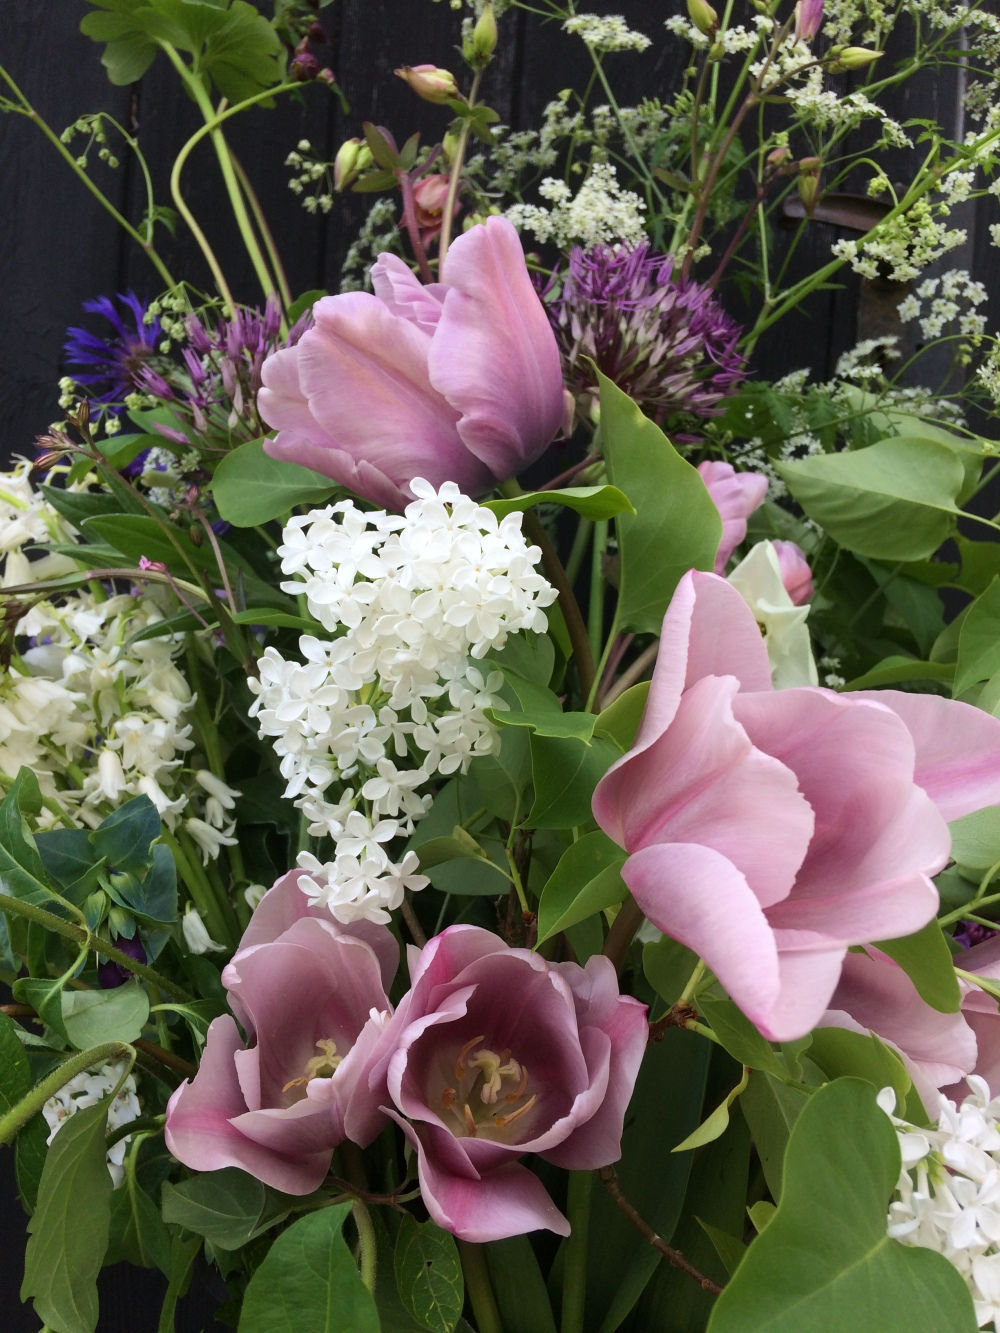 Royal Wedding Flowers, Seasonal Flowers, delicate scented beauty no bulk wholesale, just natural with zero air miles